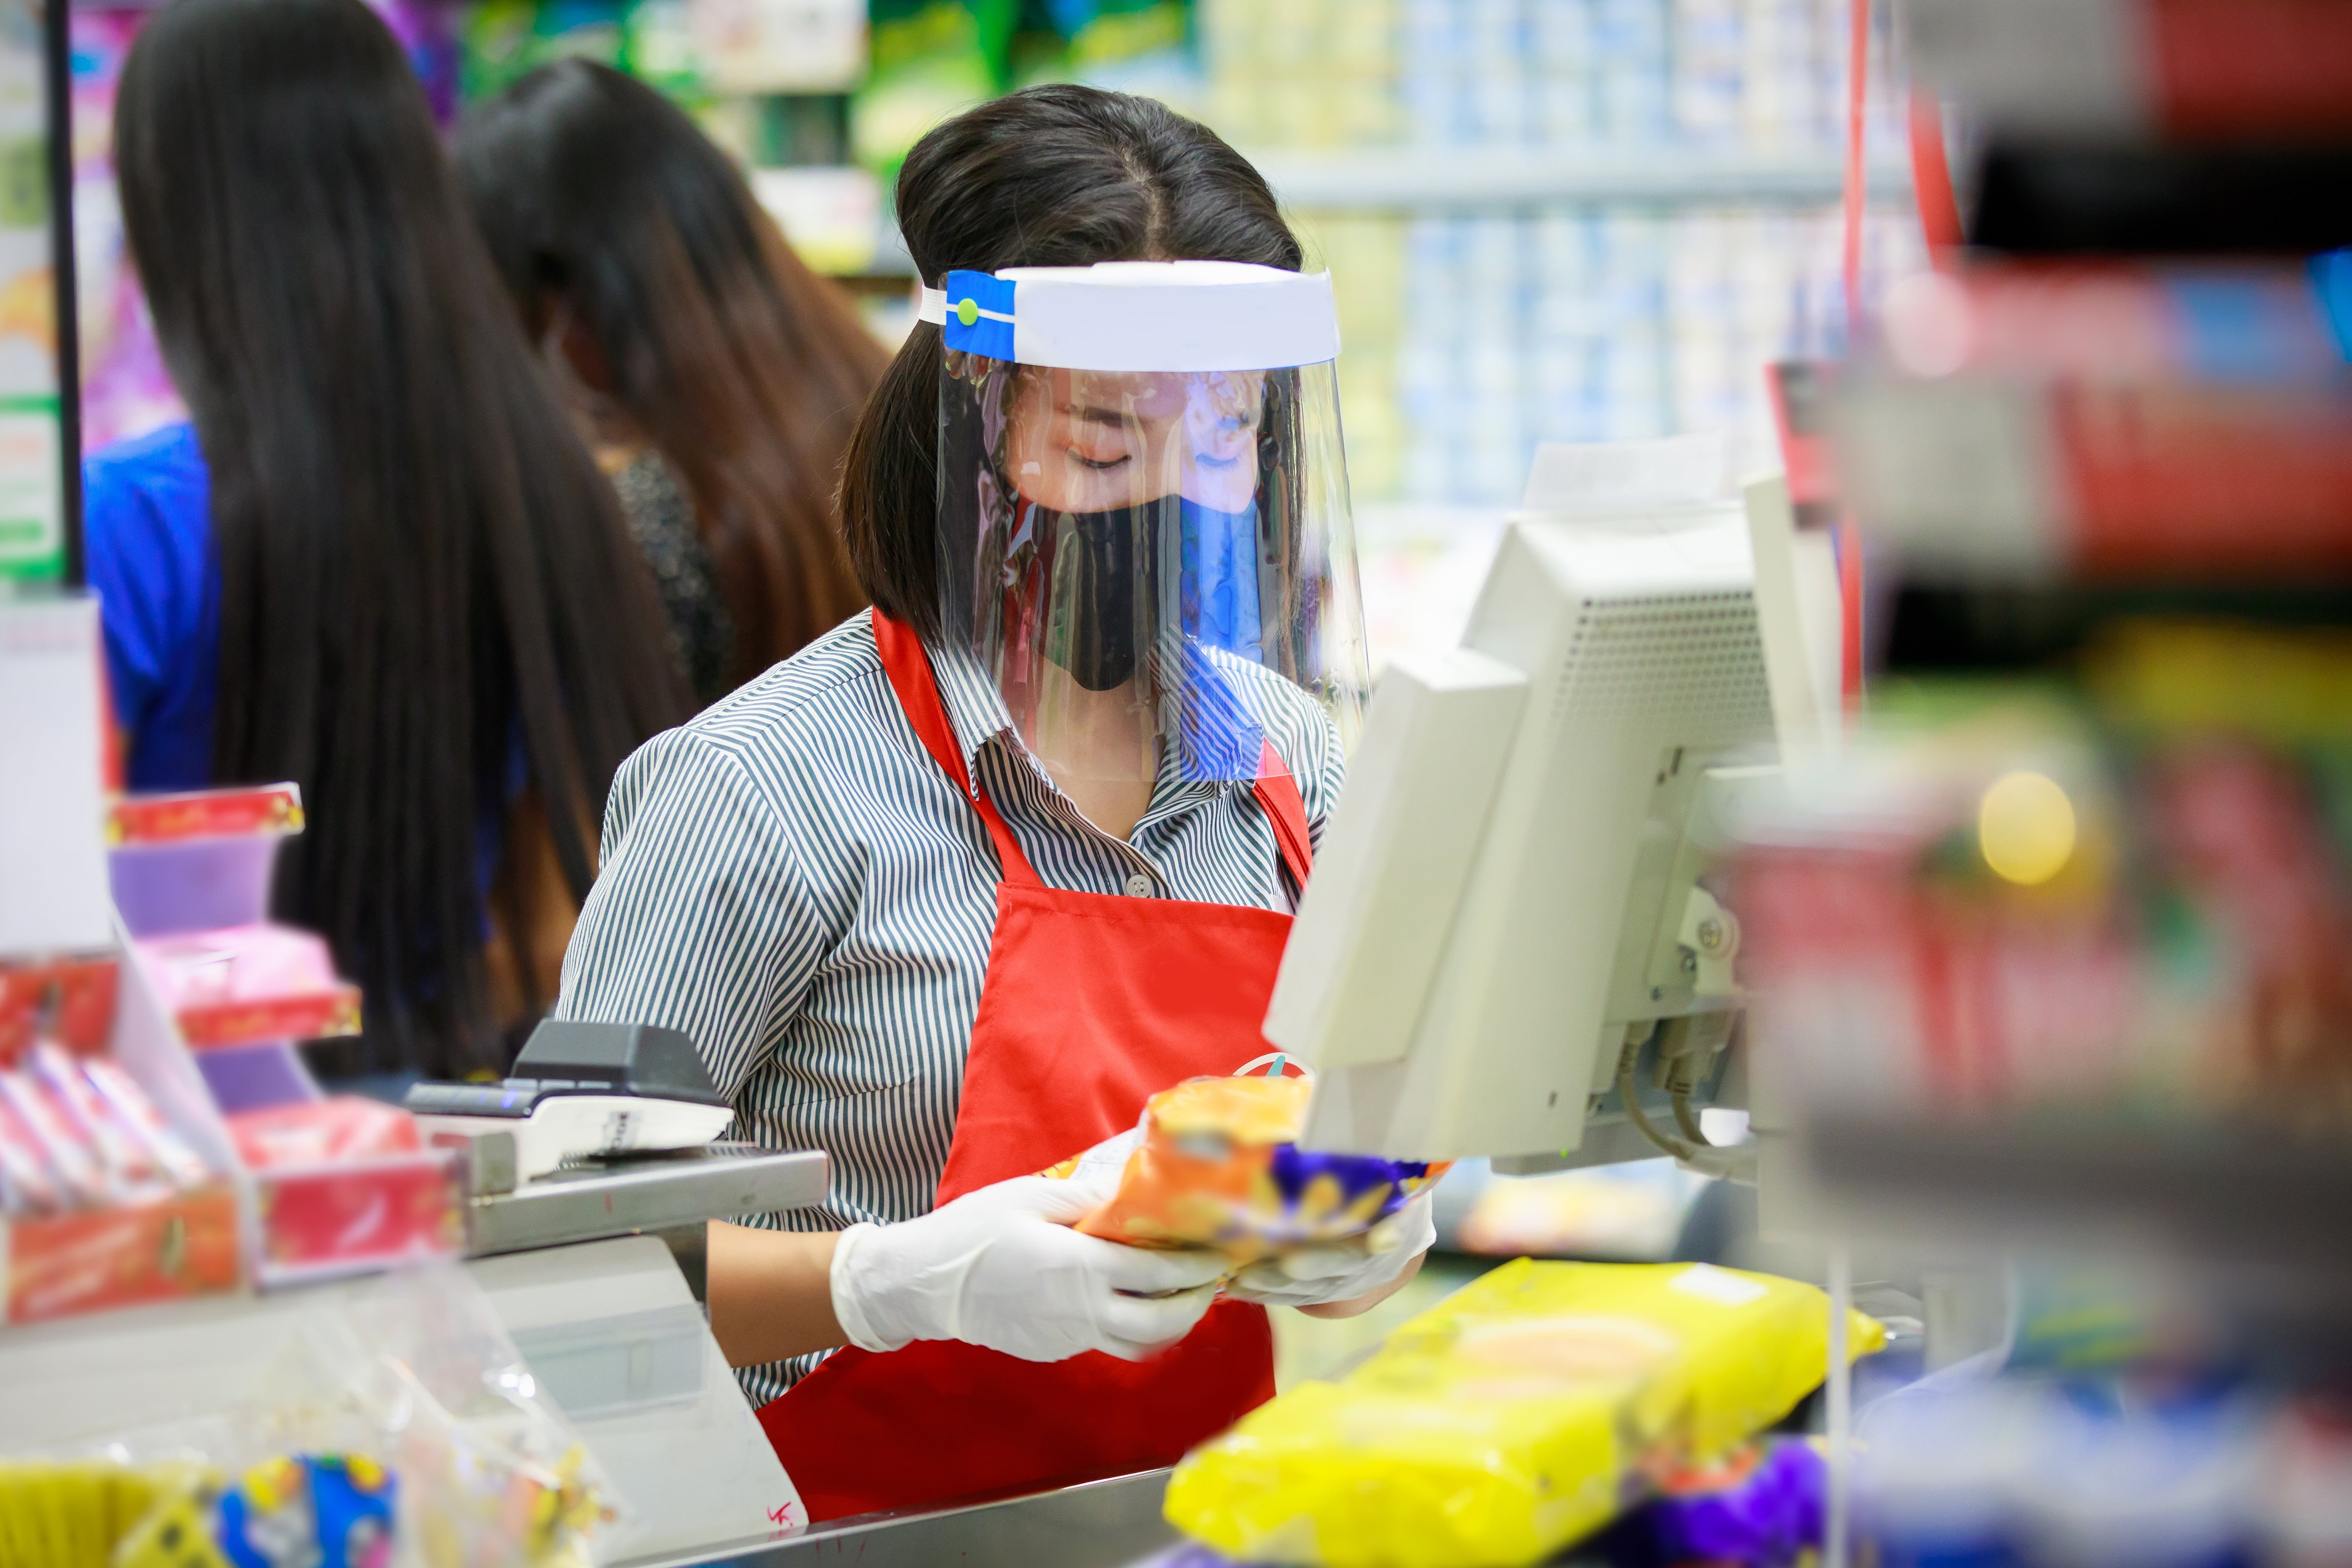 health and safety market research retail work face mask